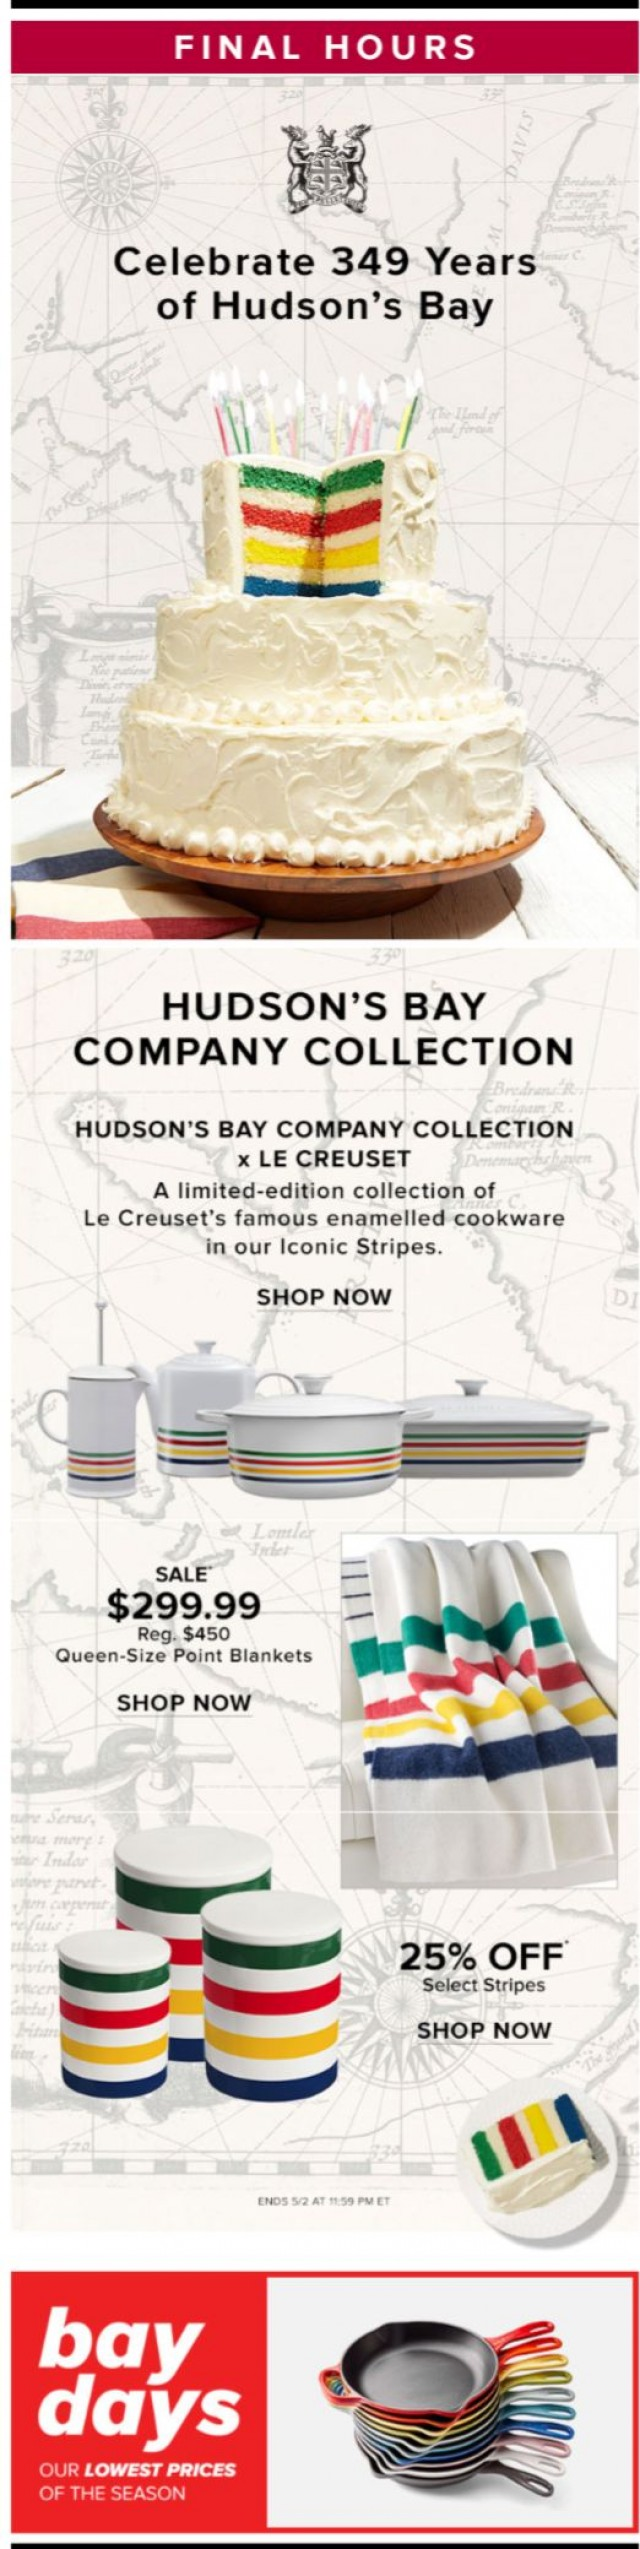 Coupon for: Hudson's Bay - Our birthday is ENDING, so is 25% OFF our Iconic Stripes!